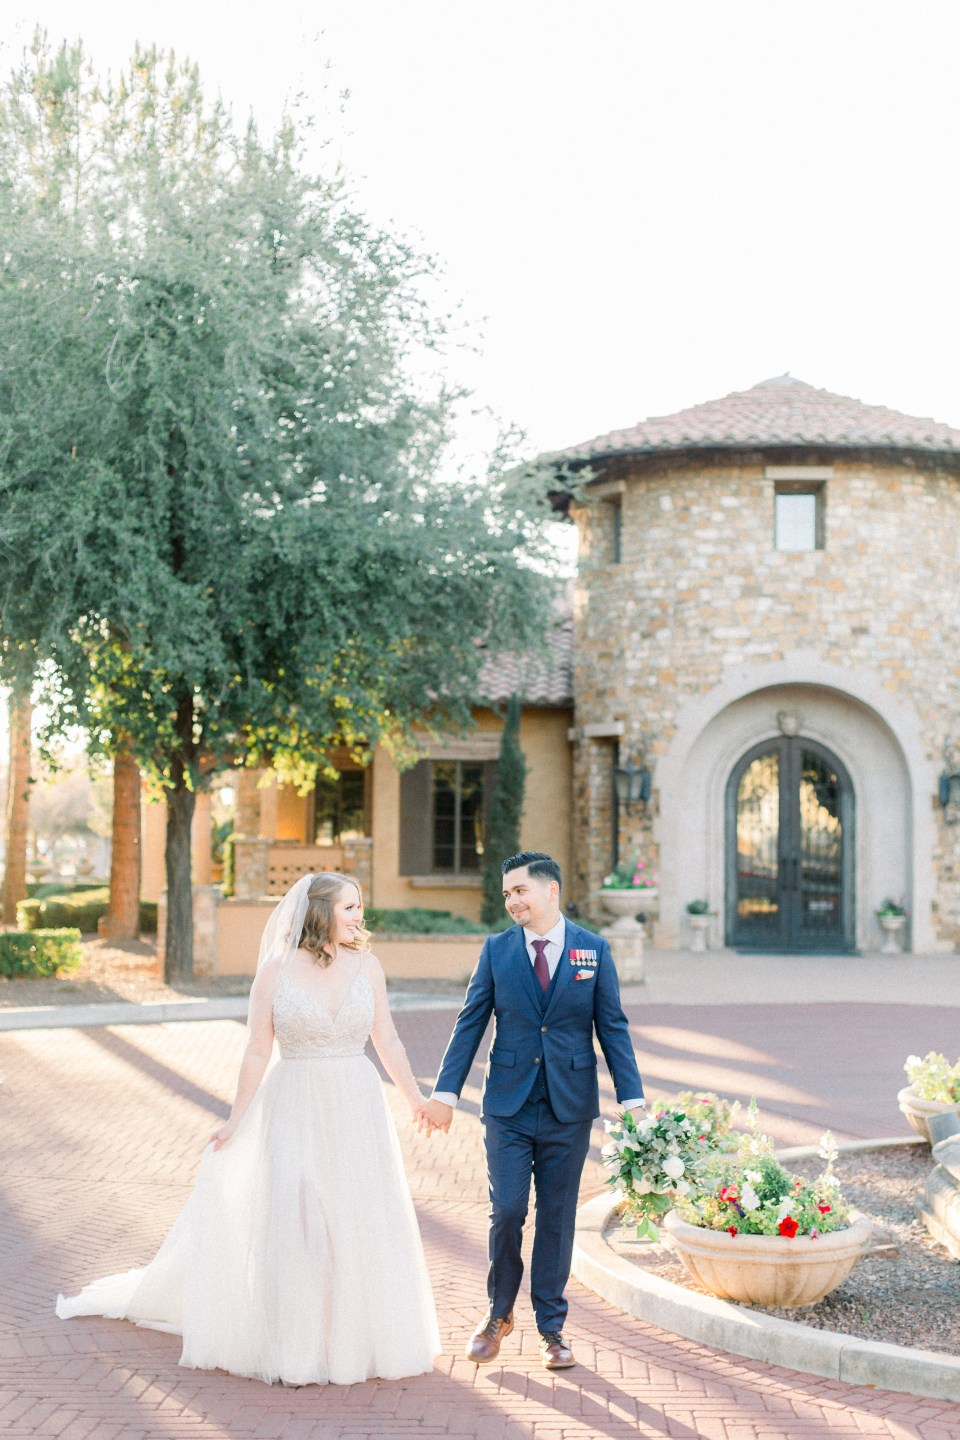 Villa Siena Wedding Day Preview, Villa Siena Wedding Photographer, Villa Siena Weddings, Gilbert Arizona Wedding Photographer, Gilbert Weddings, Scottsdale Wedding Photographer, Arizona Film Wedding Photographer, Arizona Weddings, AZWED, Tuscan Wedding Venue, Lauren Buman Photographer